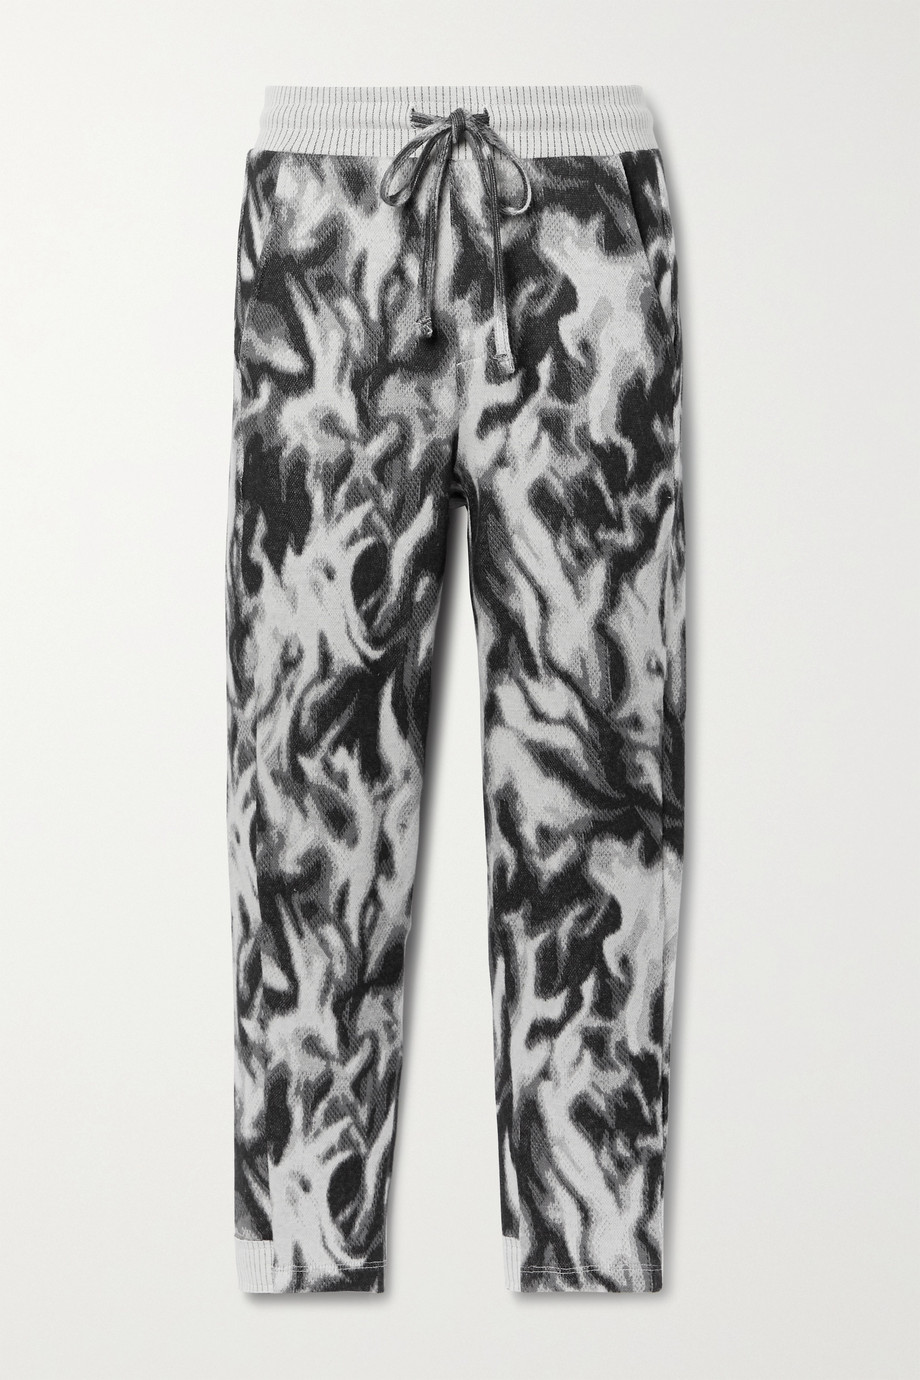 TWENTY MONTRÉAL Flames Hyper Reality jacquard-knit cotton-blend track pants